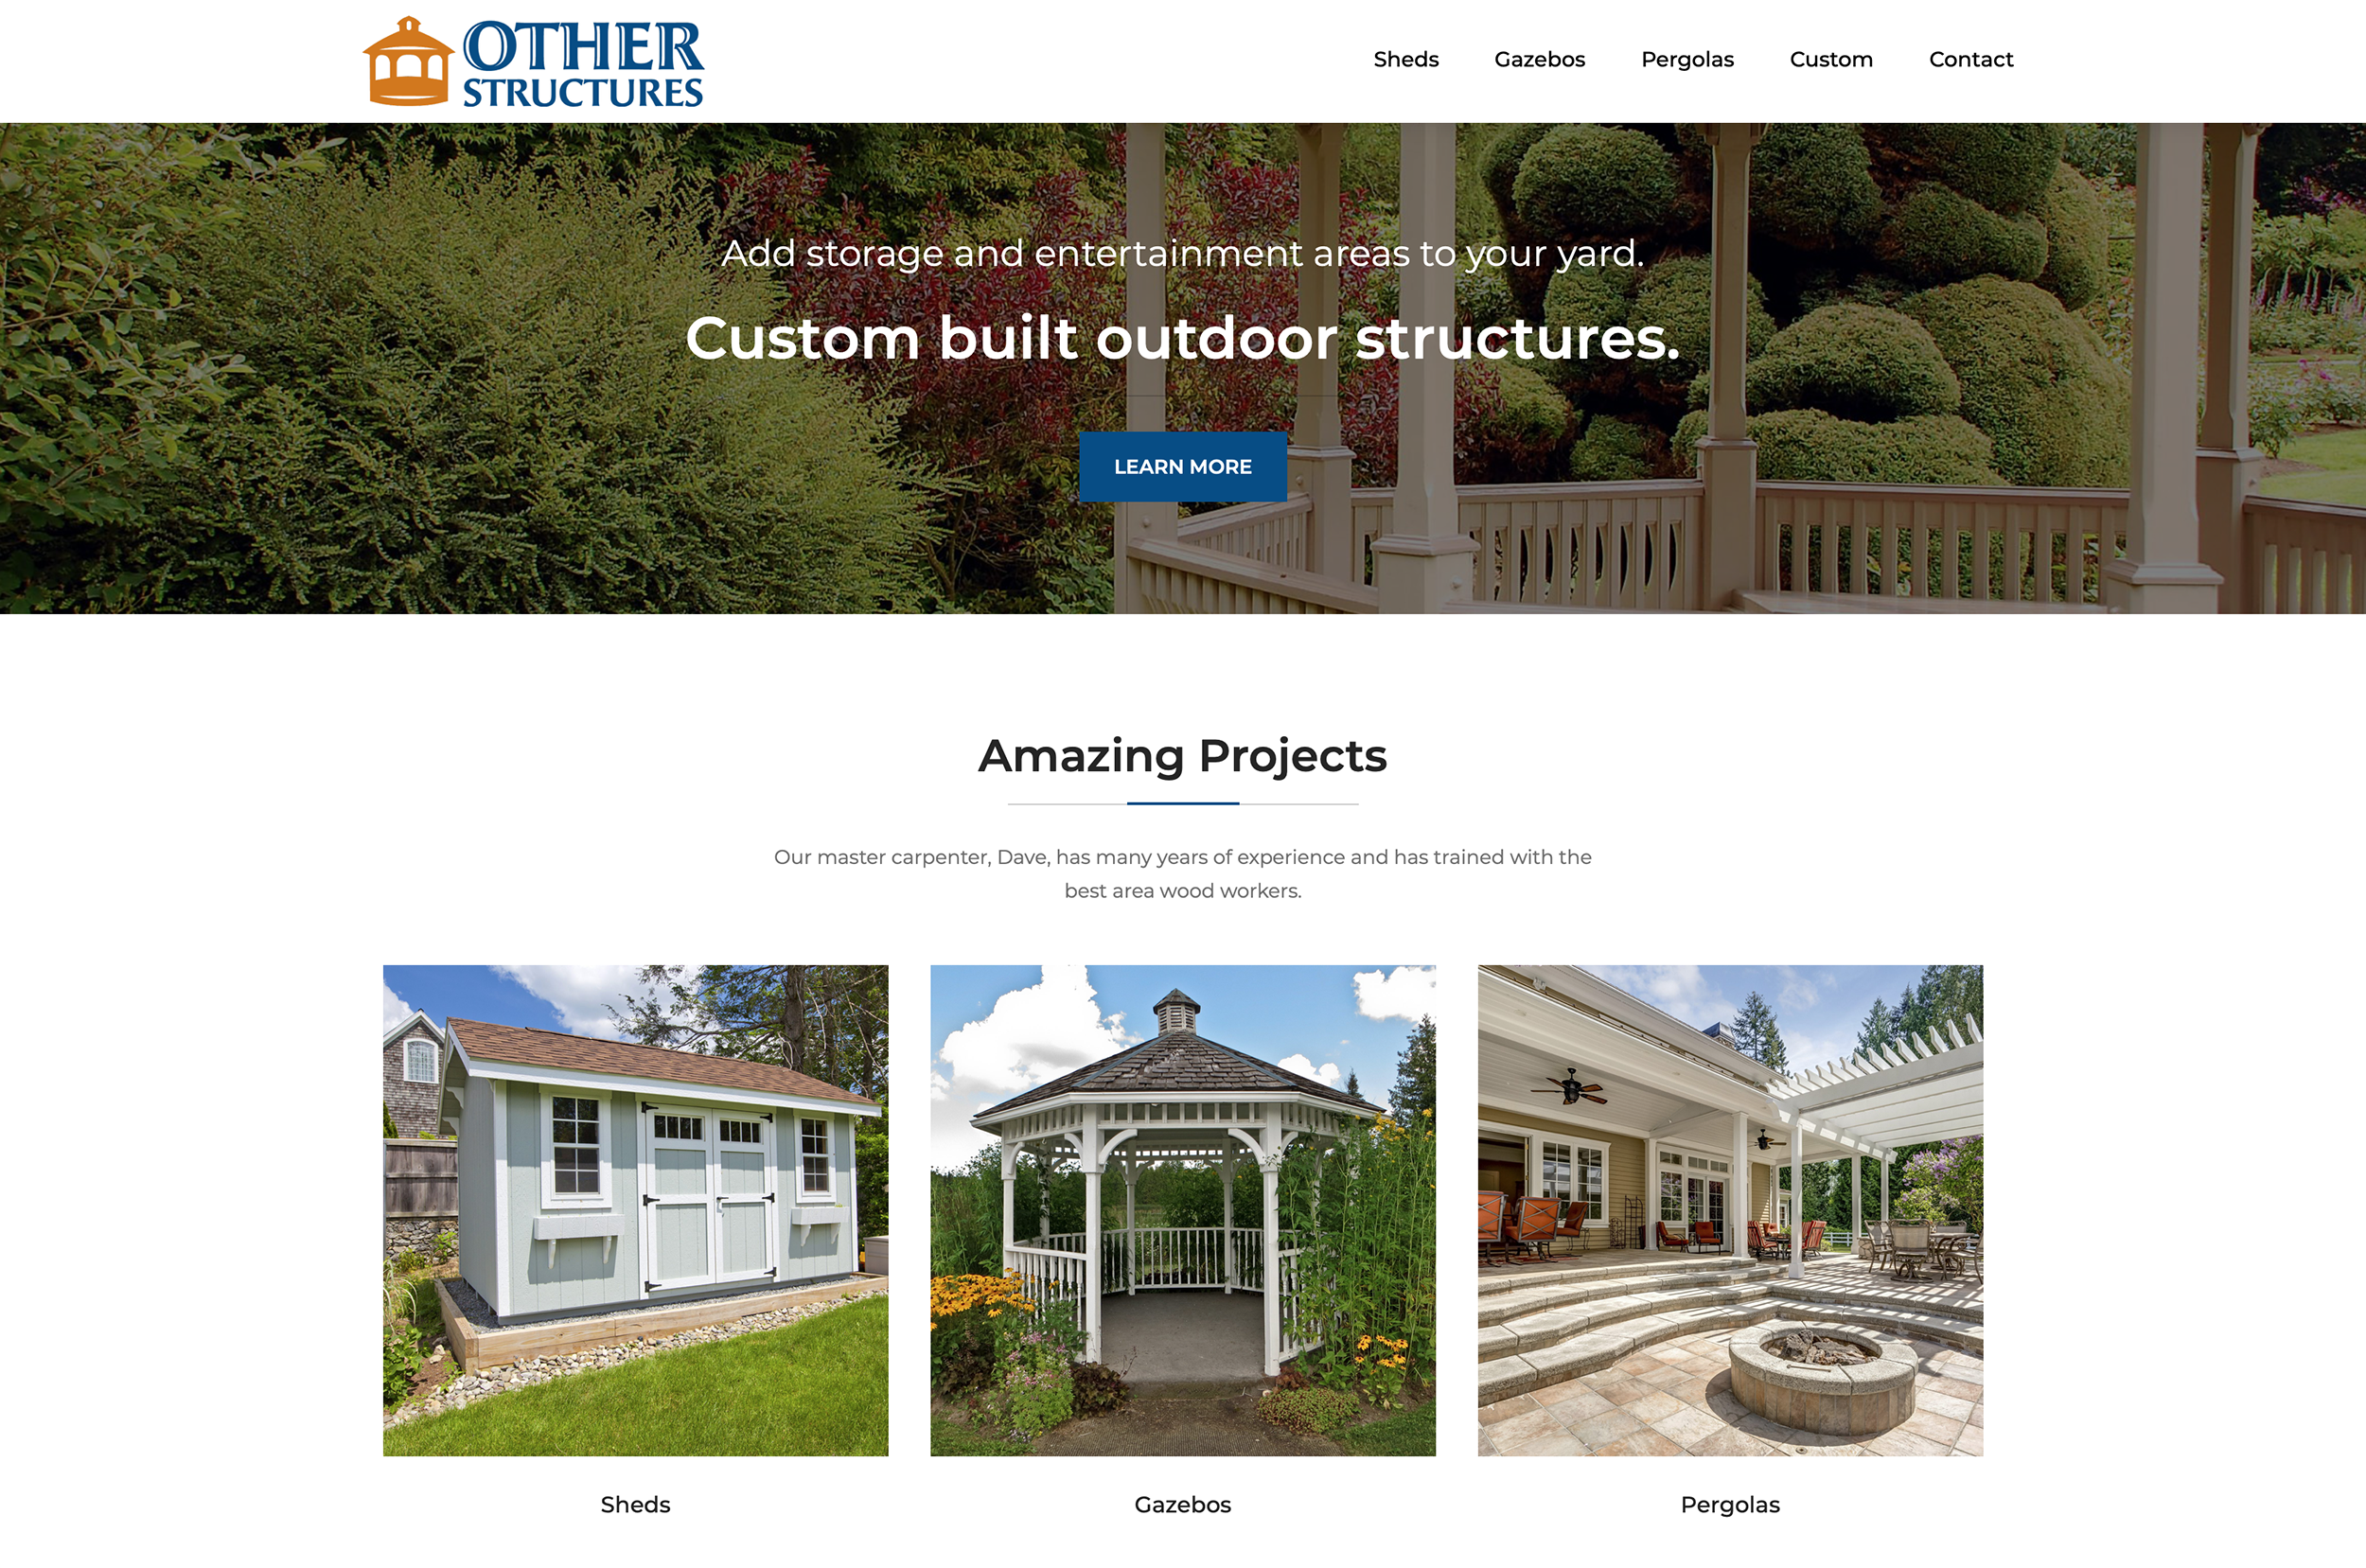 Other Structures Website Home Page